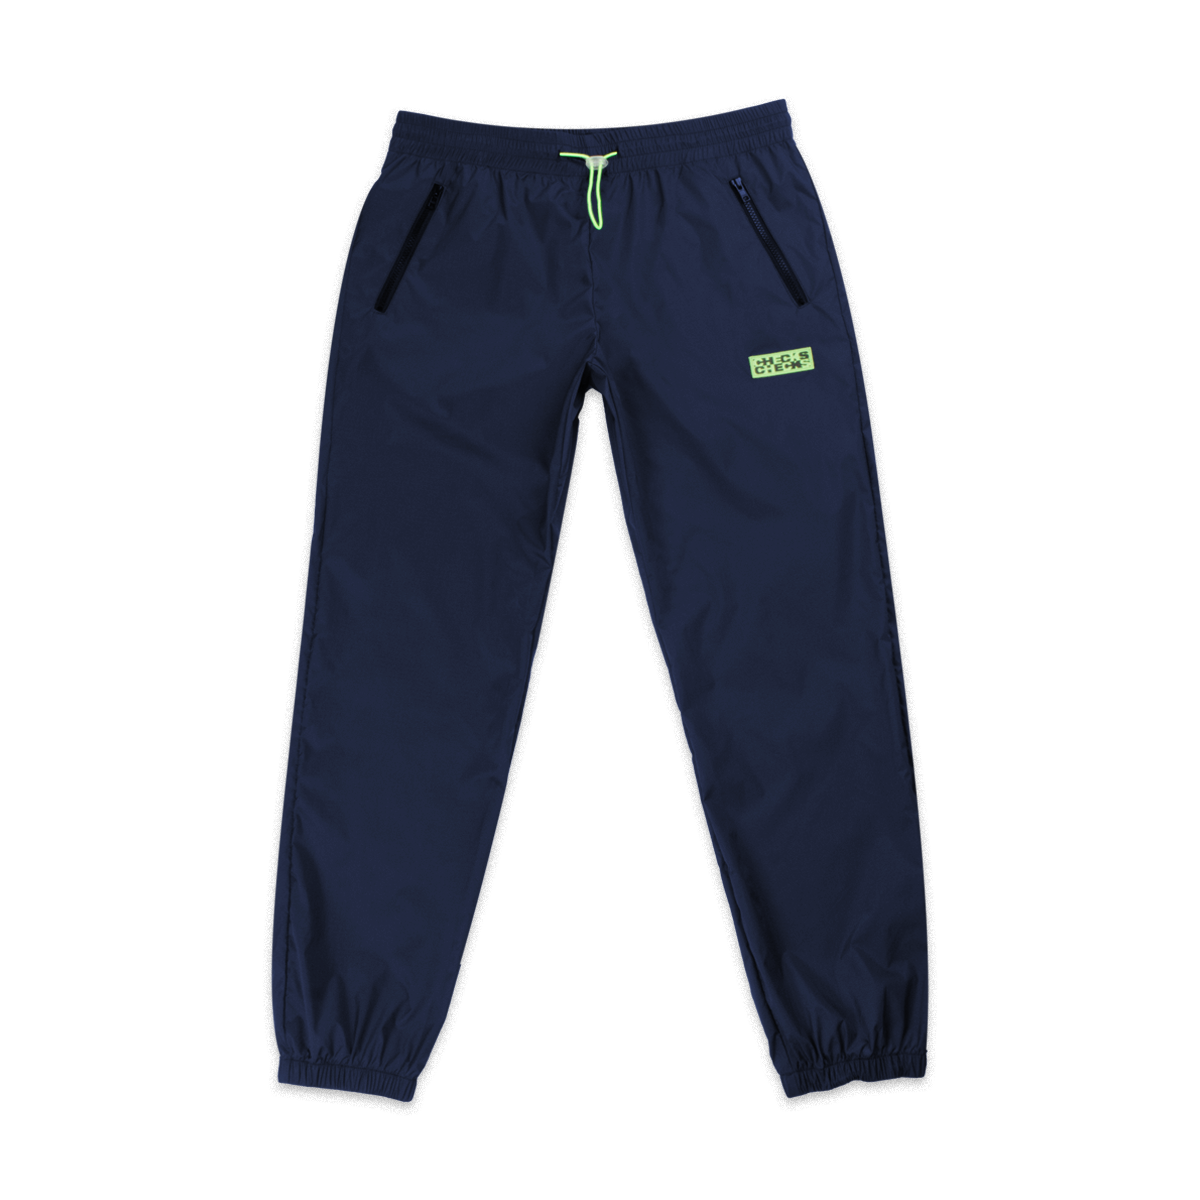 Nylon Running Pants Navy | CHECKS DOWNTOWN  Edit alt text